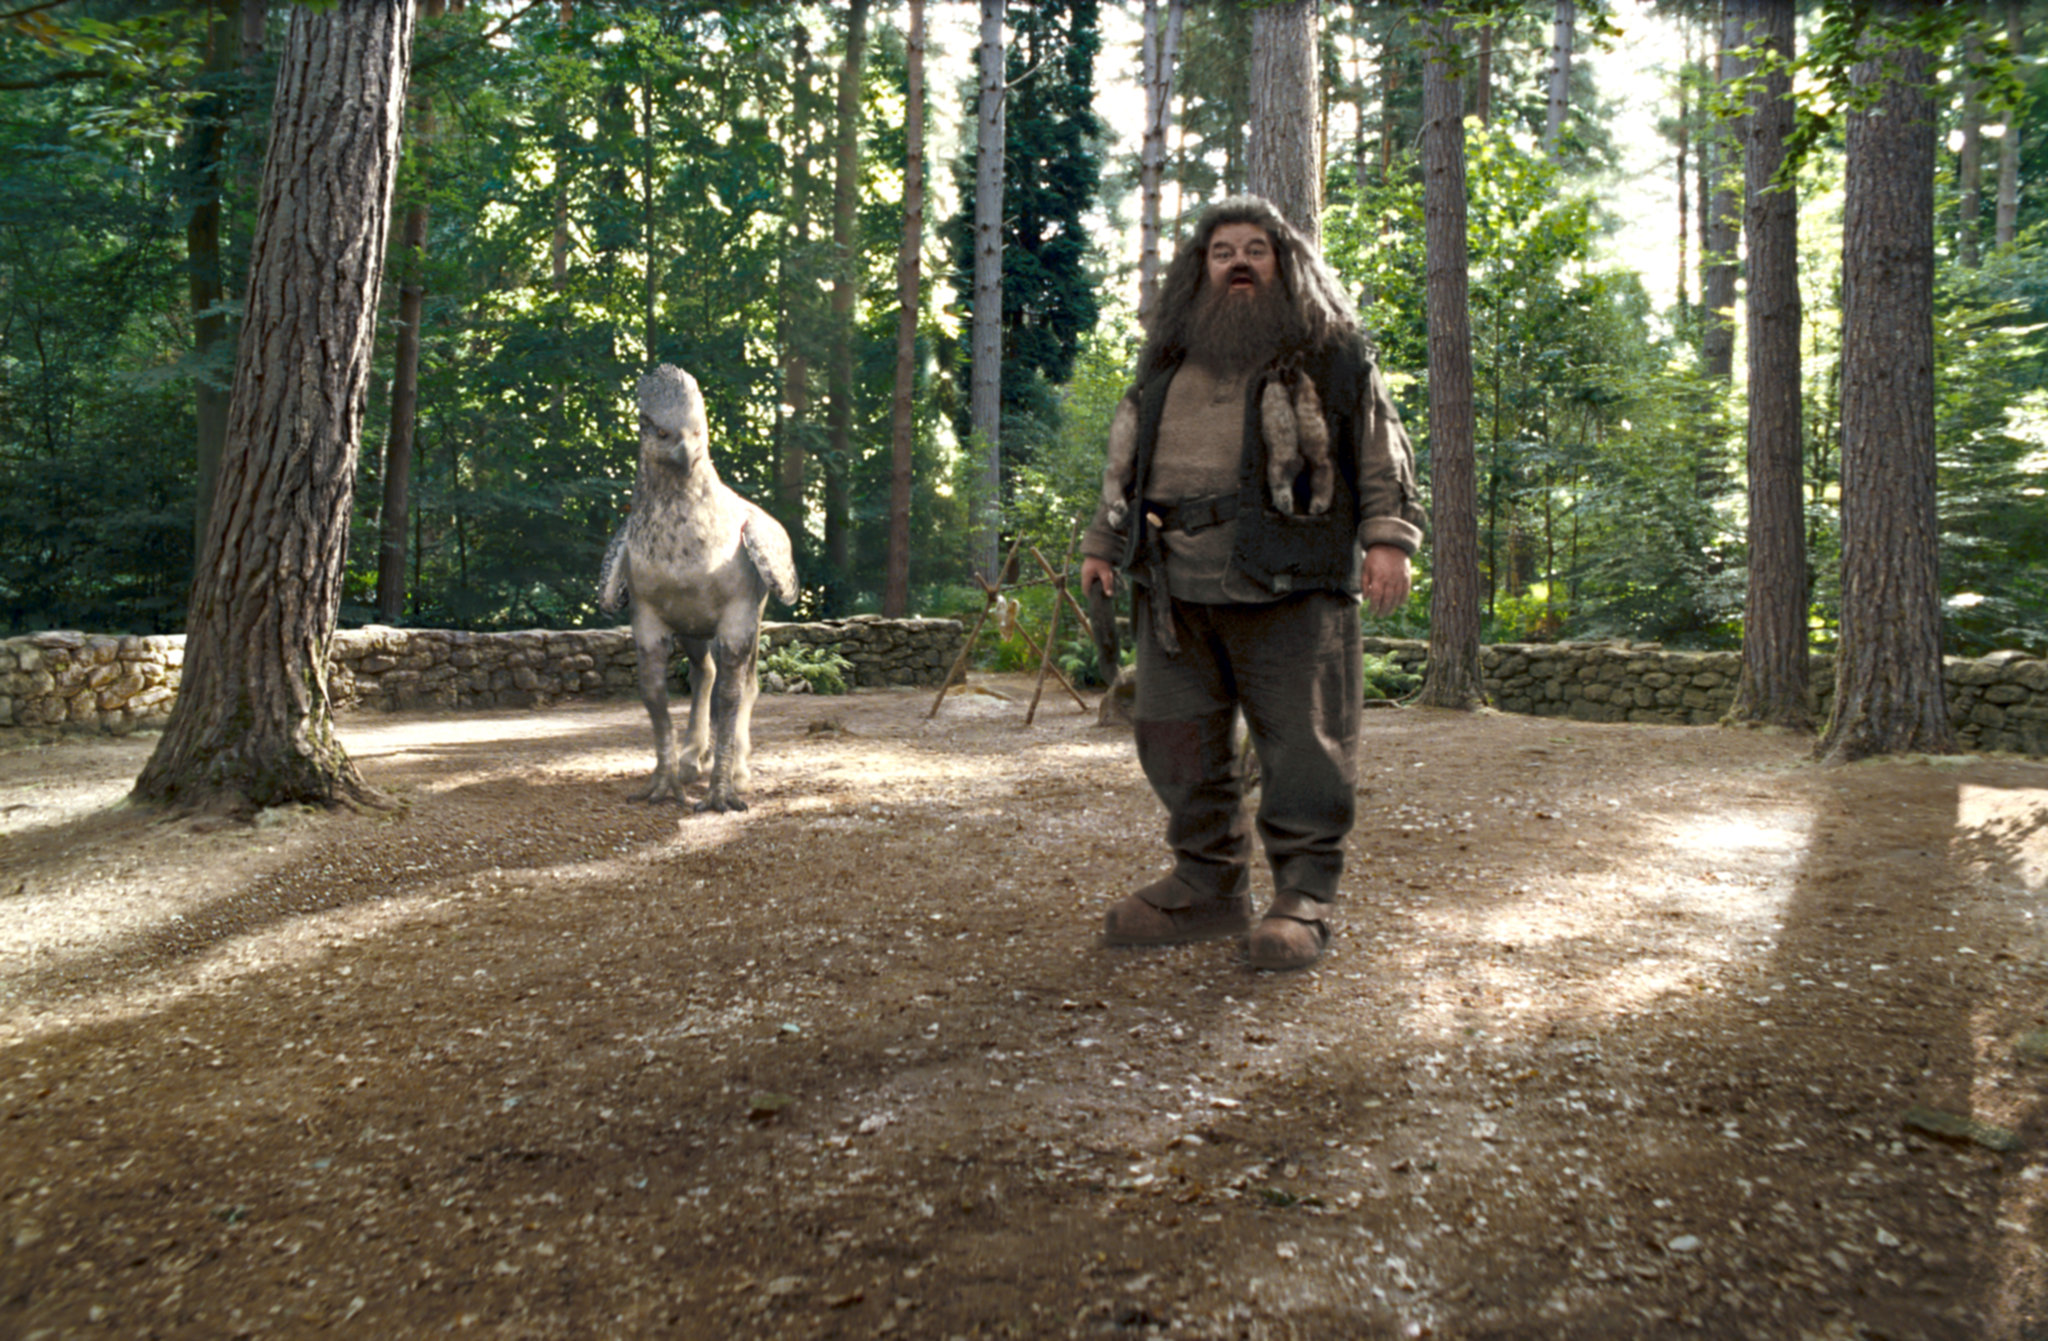 Hagrid introduces his Care of Magical Creatures class to Buckbeak